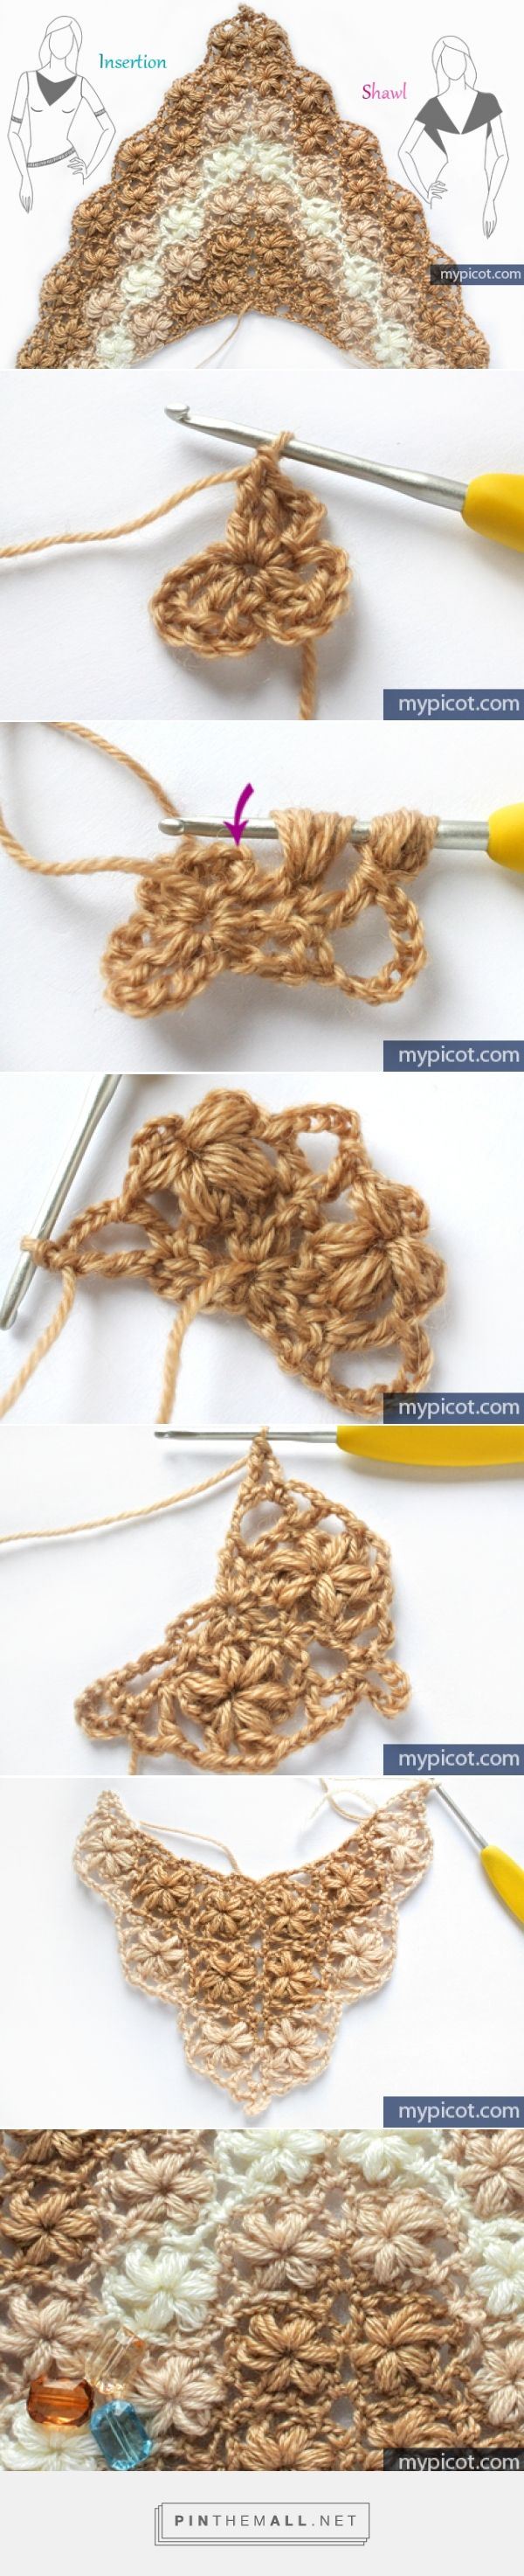 """#Crochet_Stitches -- """"Interesting puff stitch floral pattern from mypicot. Useful for insertion/collar or shawl. Lots more details at site."""" 4U from #KnittingGuru"""